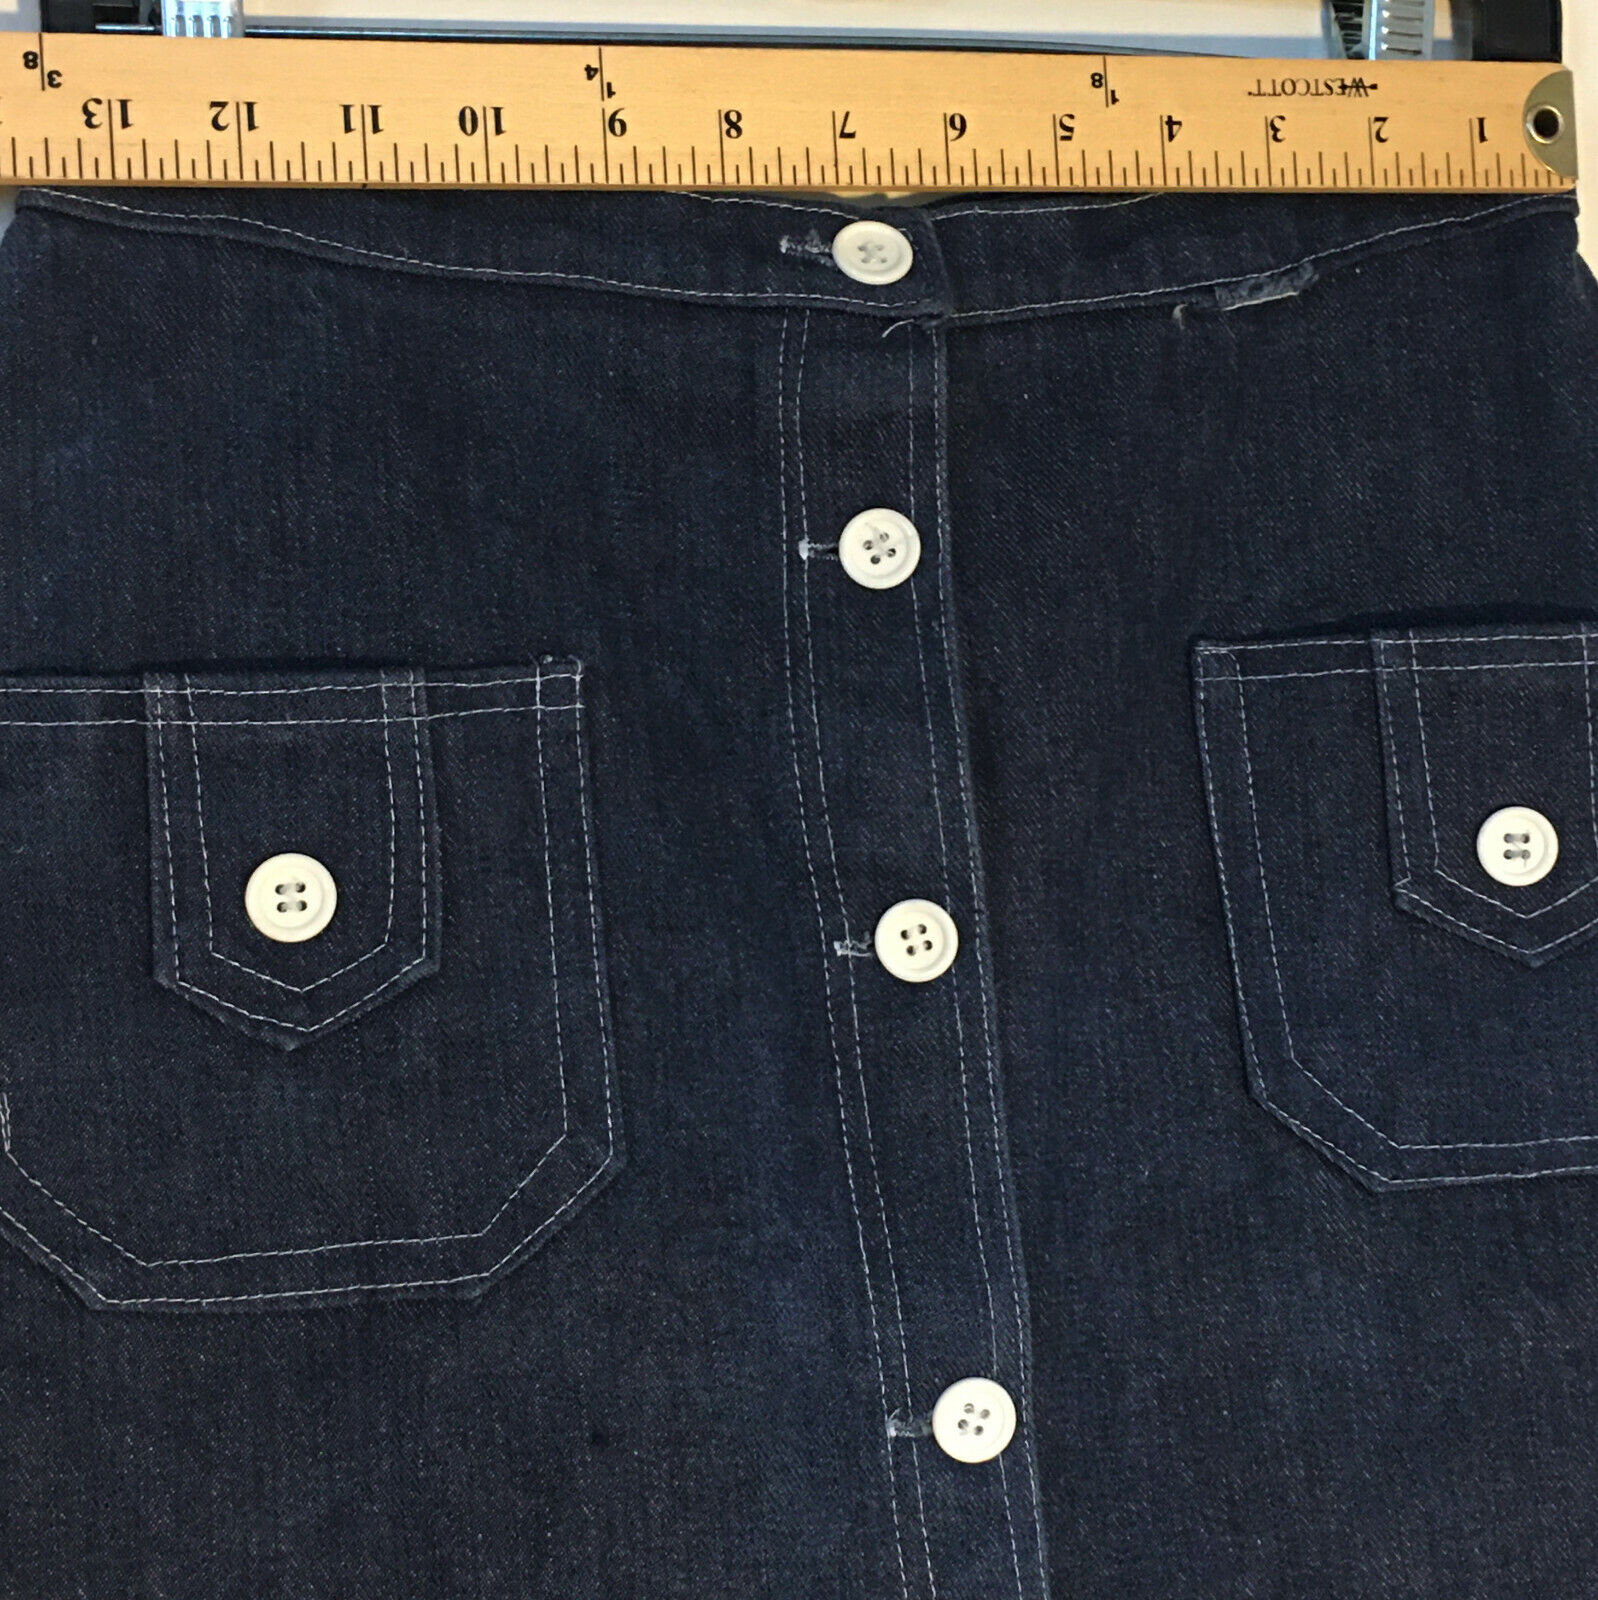 Peekaboo A-Line Vintage Inspired Denim Button Fro… - image 4